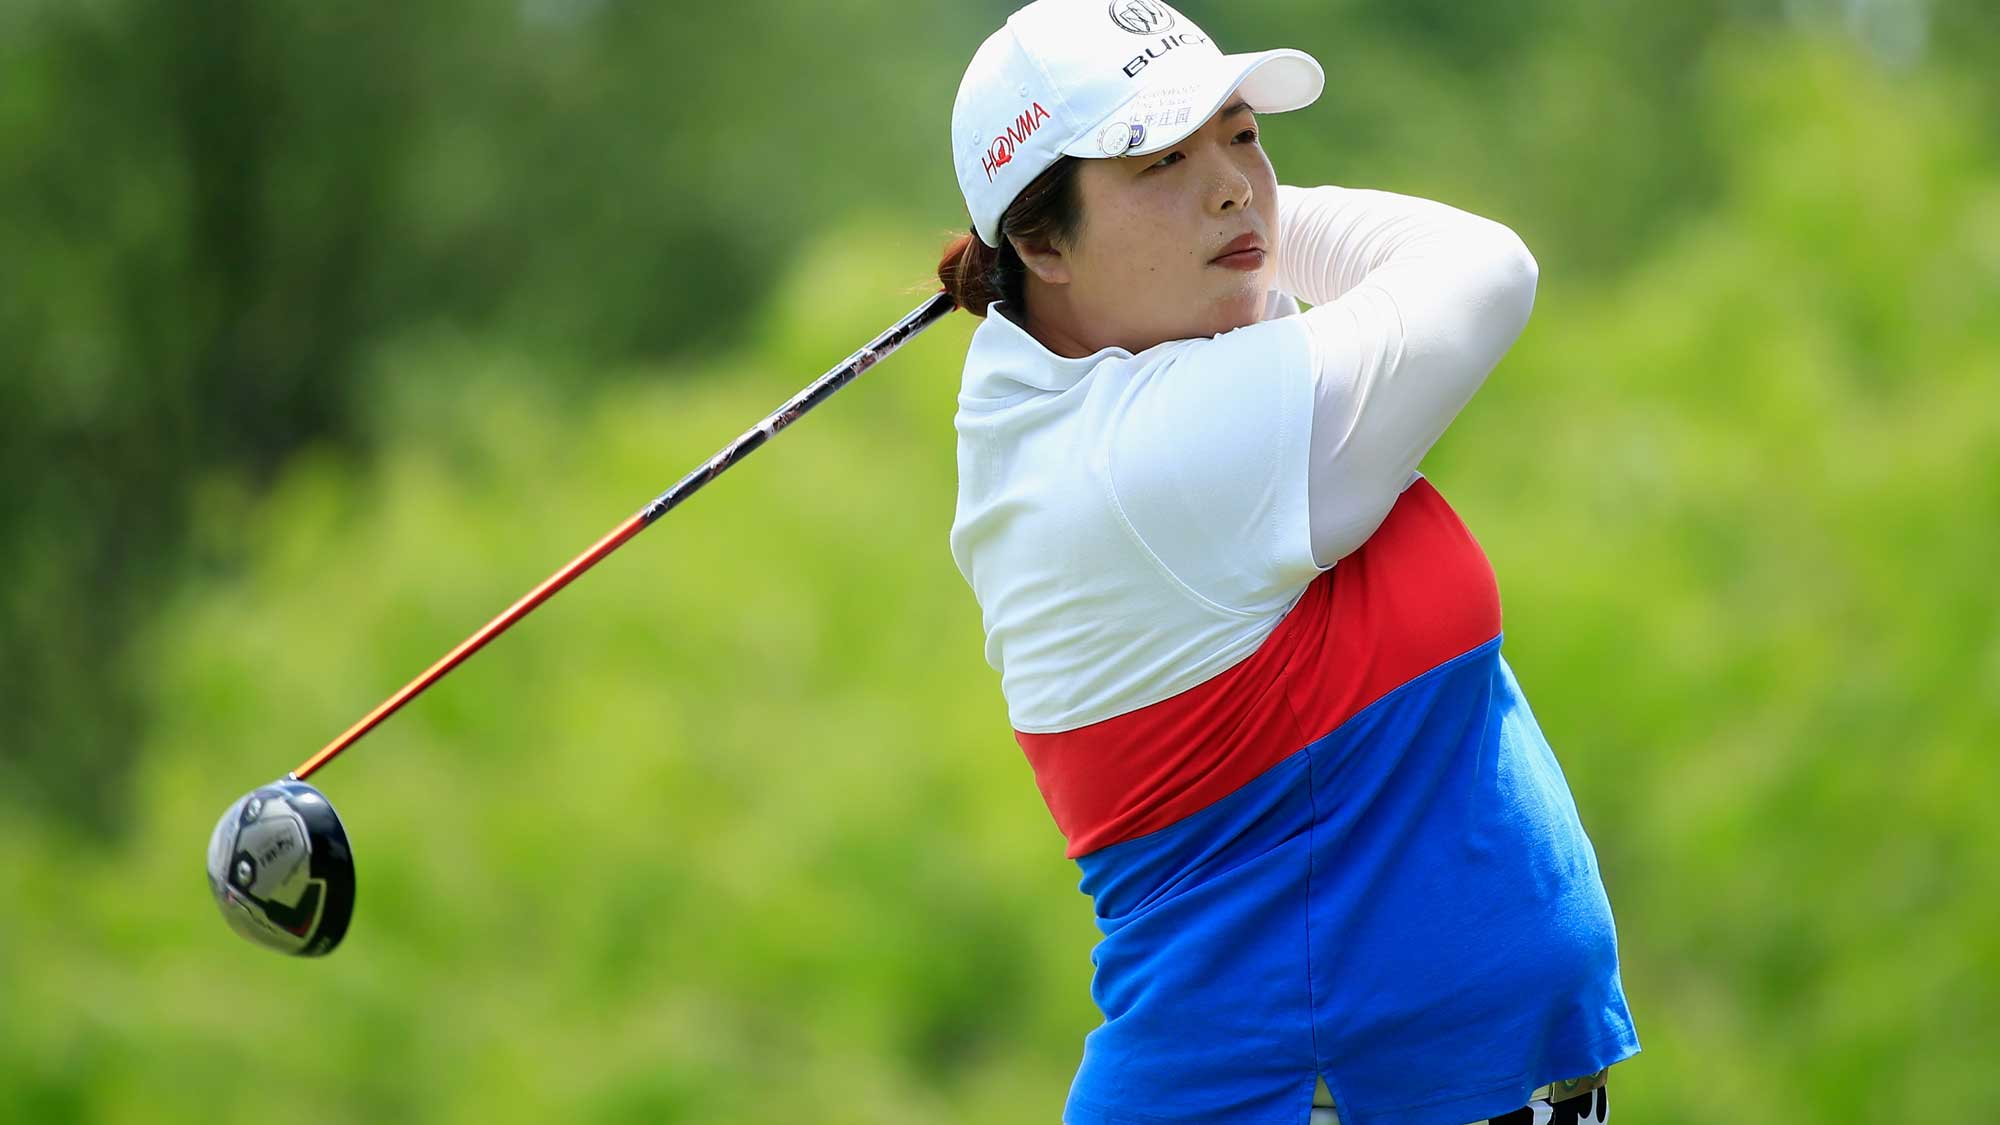 Shanshan Feng of China hits her tee shot on the eighth hole during the third round of the Volunteers of America Texas Shootout